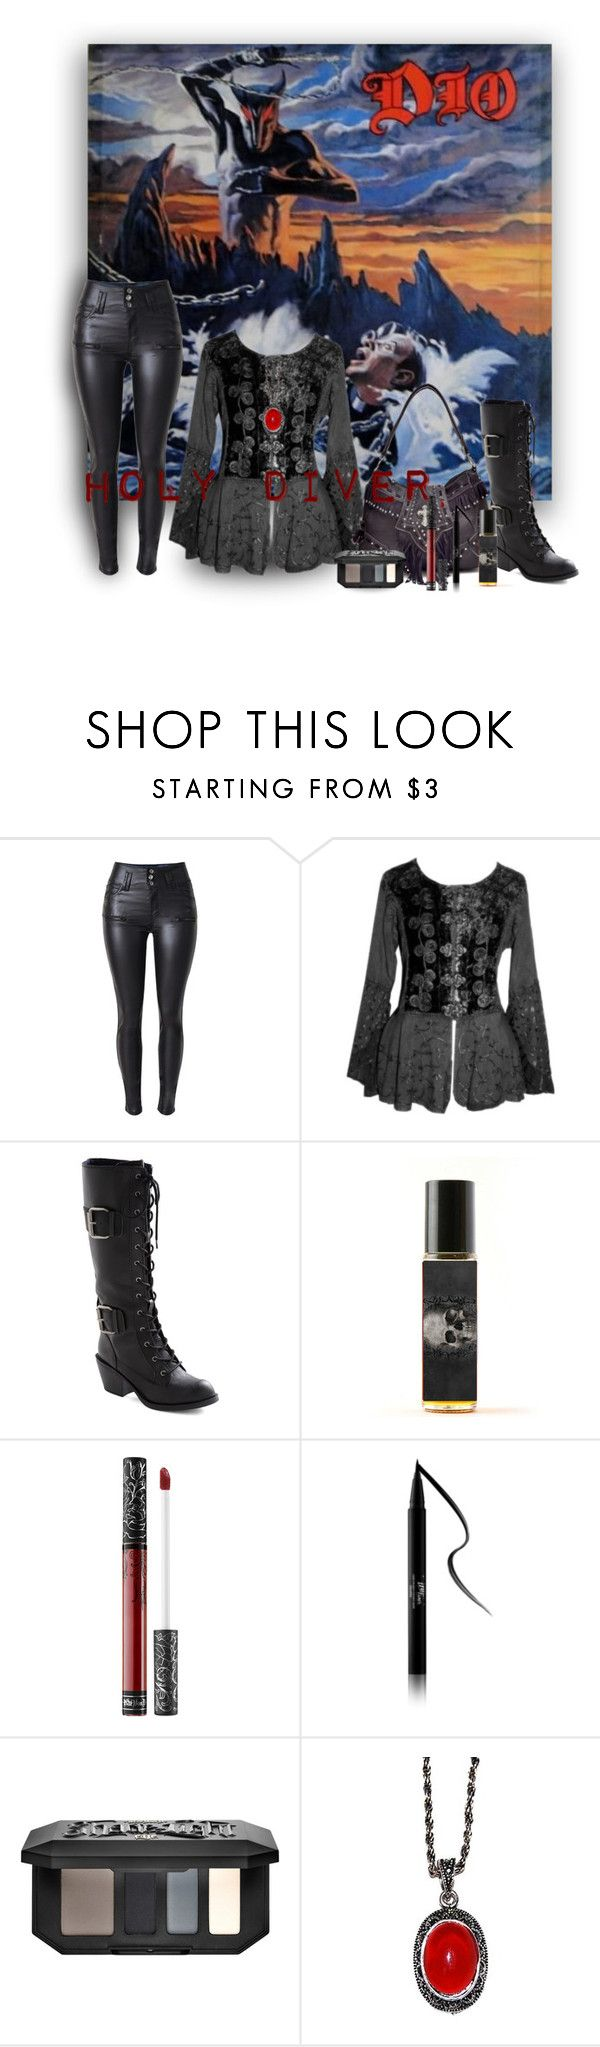 """HOLY DIVER"" by marielecastan ❤ liked on Polyvore featuring Trilogy, Kat Von D"